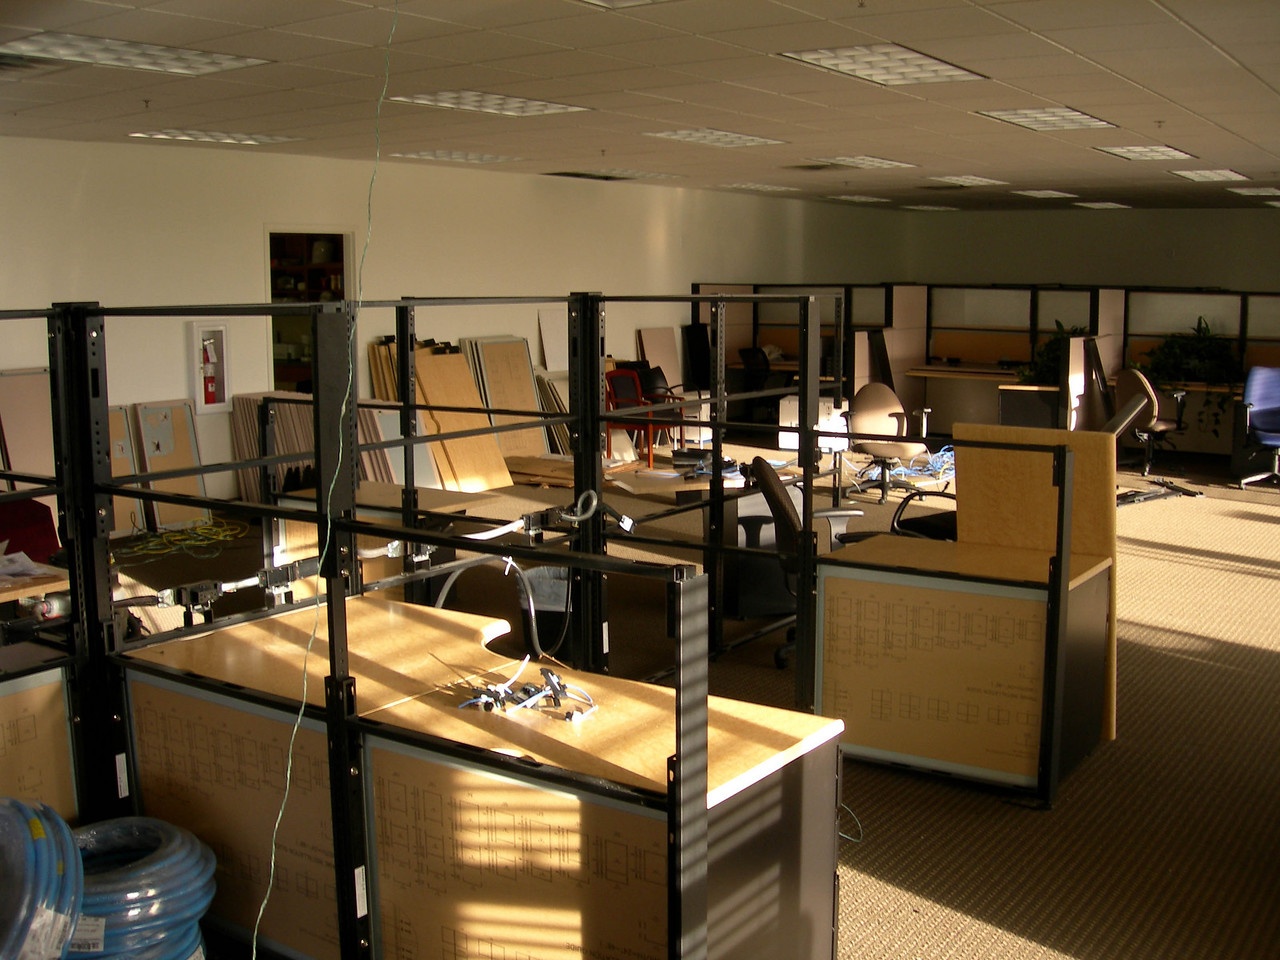 4/10/07 – I've been in our new office for over a week but just outside my office is still chaos. It will be another week before all the cubes are done and the rest of the employees move in.